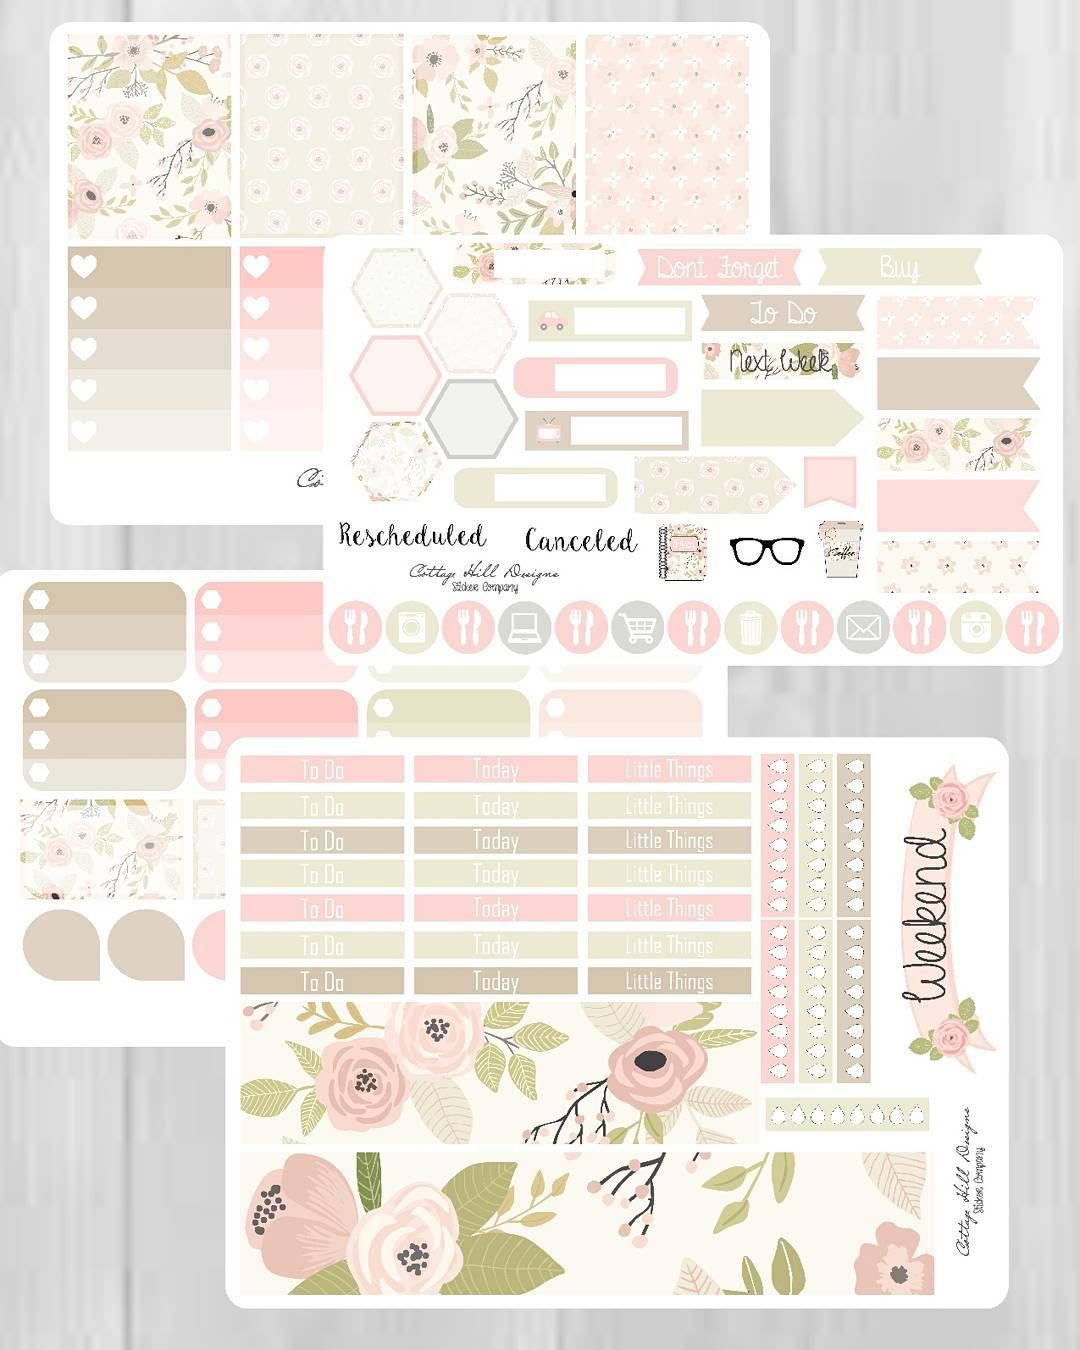 Hello Spring Kit now available in Erin Conden vertical... Happy Planner sizes coming soon! #planner #planneraddict #plannerlove #plannercommunity #plannergirl #plannerobsessed #plannernerd #plannerstuff #plannerstickers #erincondrenlifeplanner #erincondren #ec #eclp #kikkikplanner #kikkik #filofax #spring #summer #floral #weeklykit #stickers #ecvertical #happyplanner by cottagehilldesigns